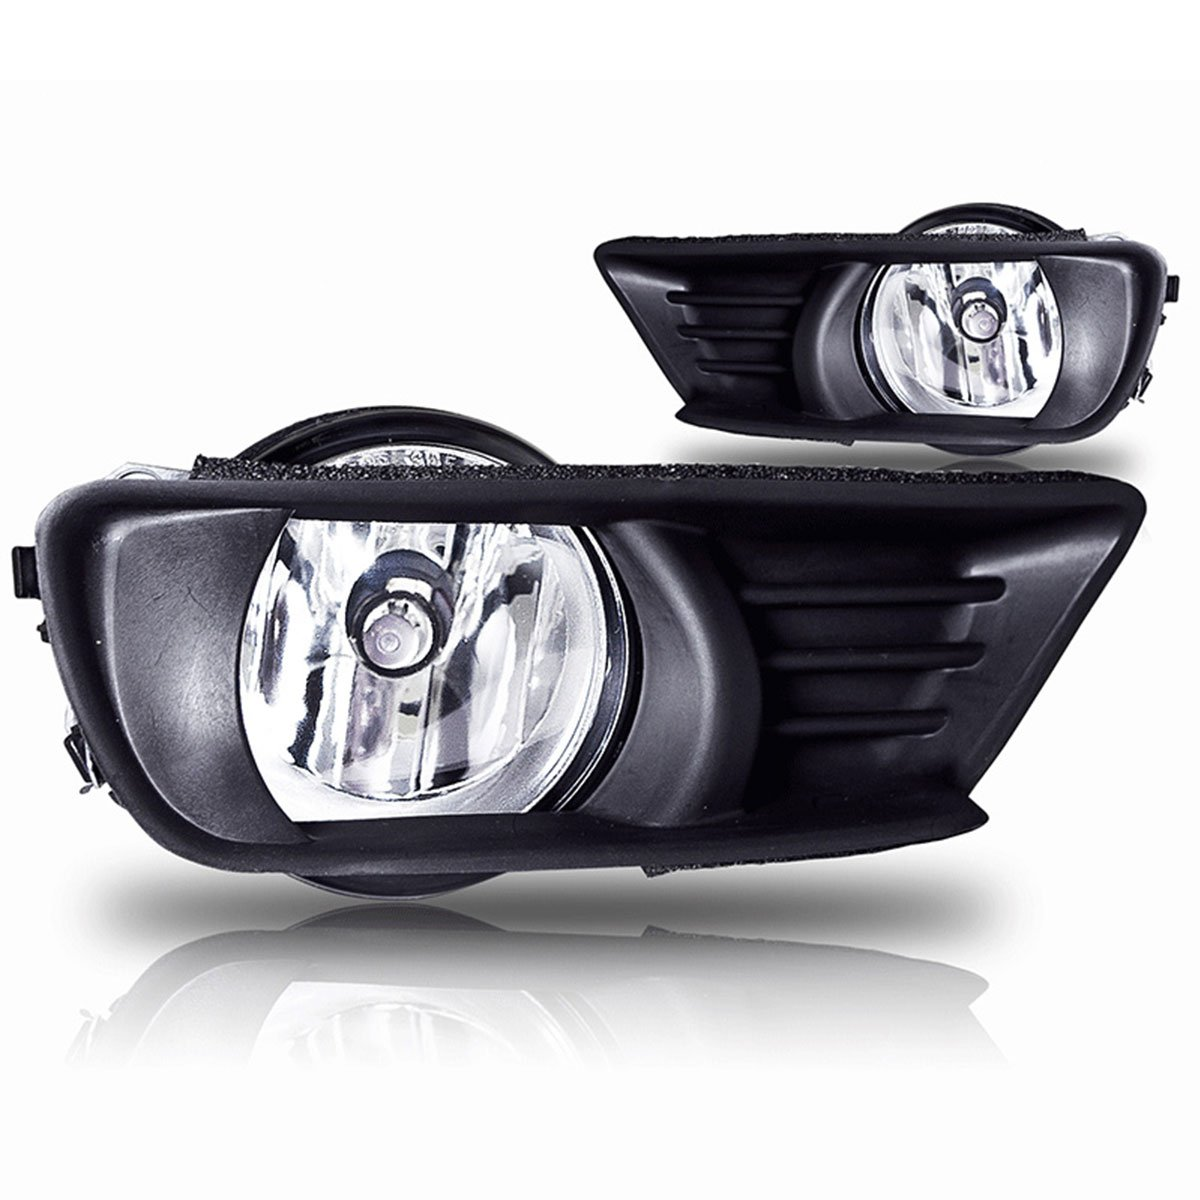 716KemnAvOL._SL1200_ amazon com 07 09 toyota camry oem fog light clear (wiring kit 02 Camry at edmiracle.co